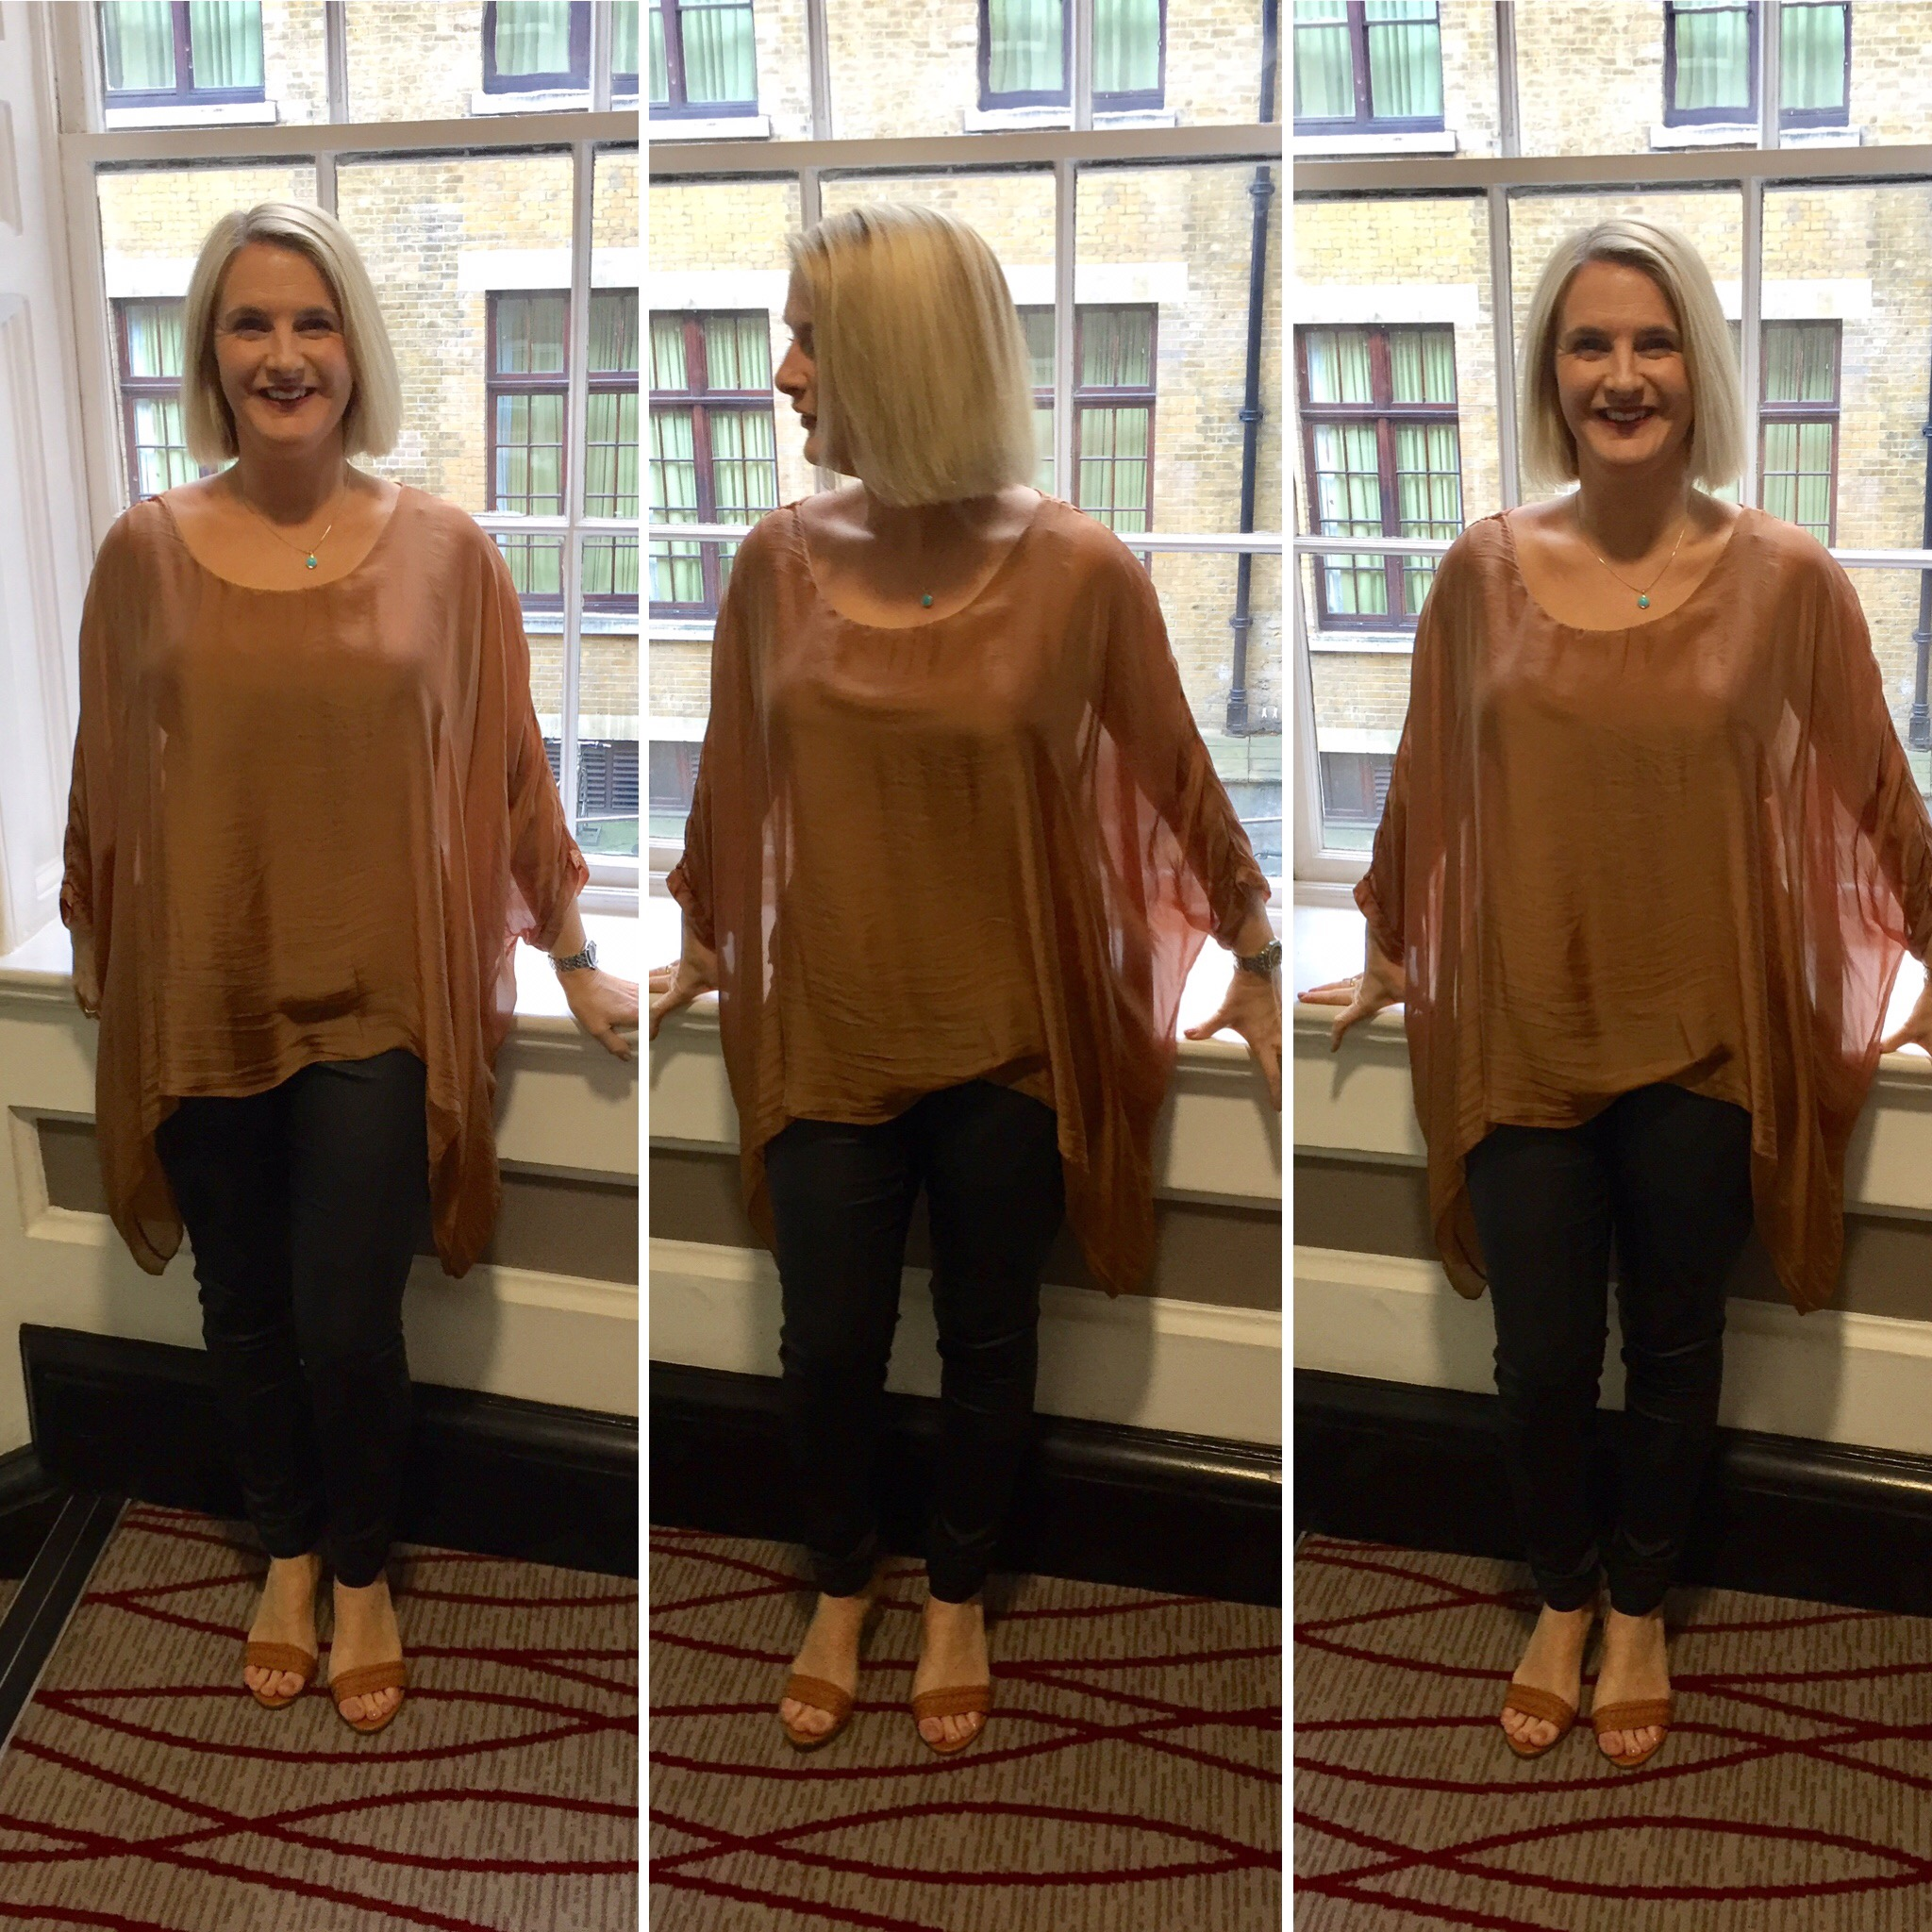 Chiffon/silk overlay on a cotton vest style undertop. I've said before I can't do layering but this one was done for me, perfect for covering and concealing.  Top from a boutique in Lavenham,Suffolk, Leather look jeggings from Next and Sandals from Ralph Lauren.